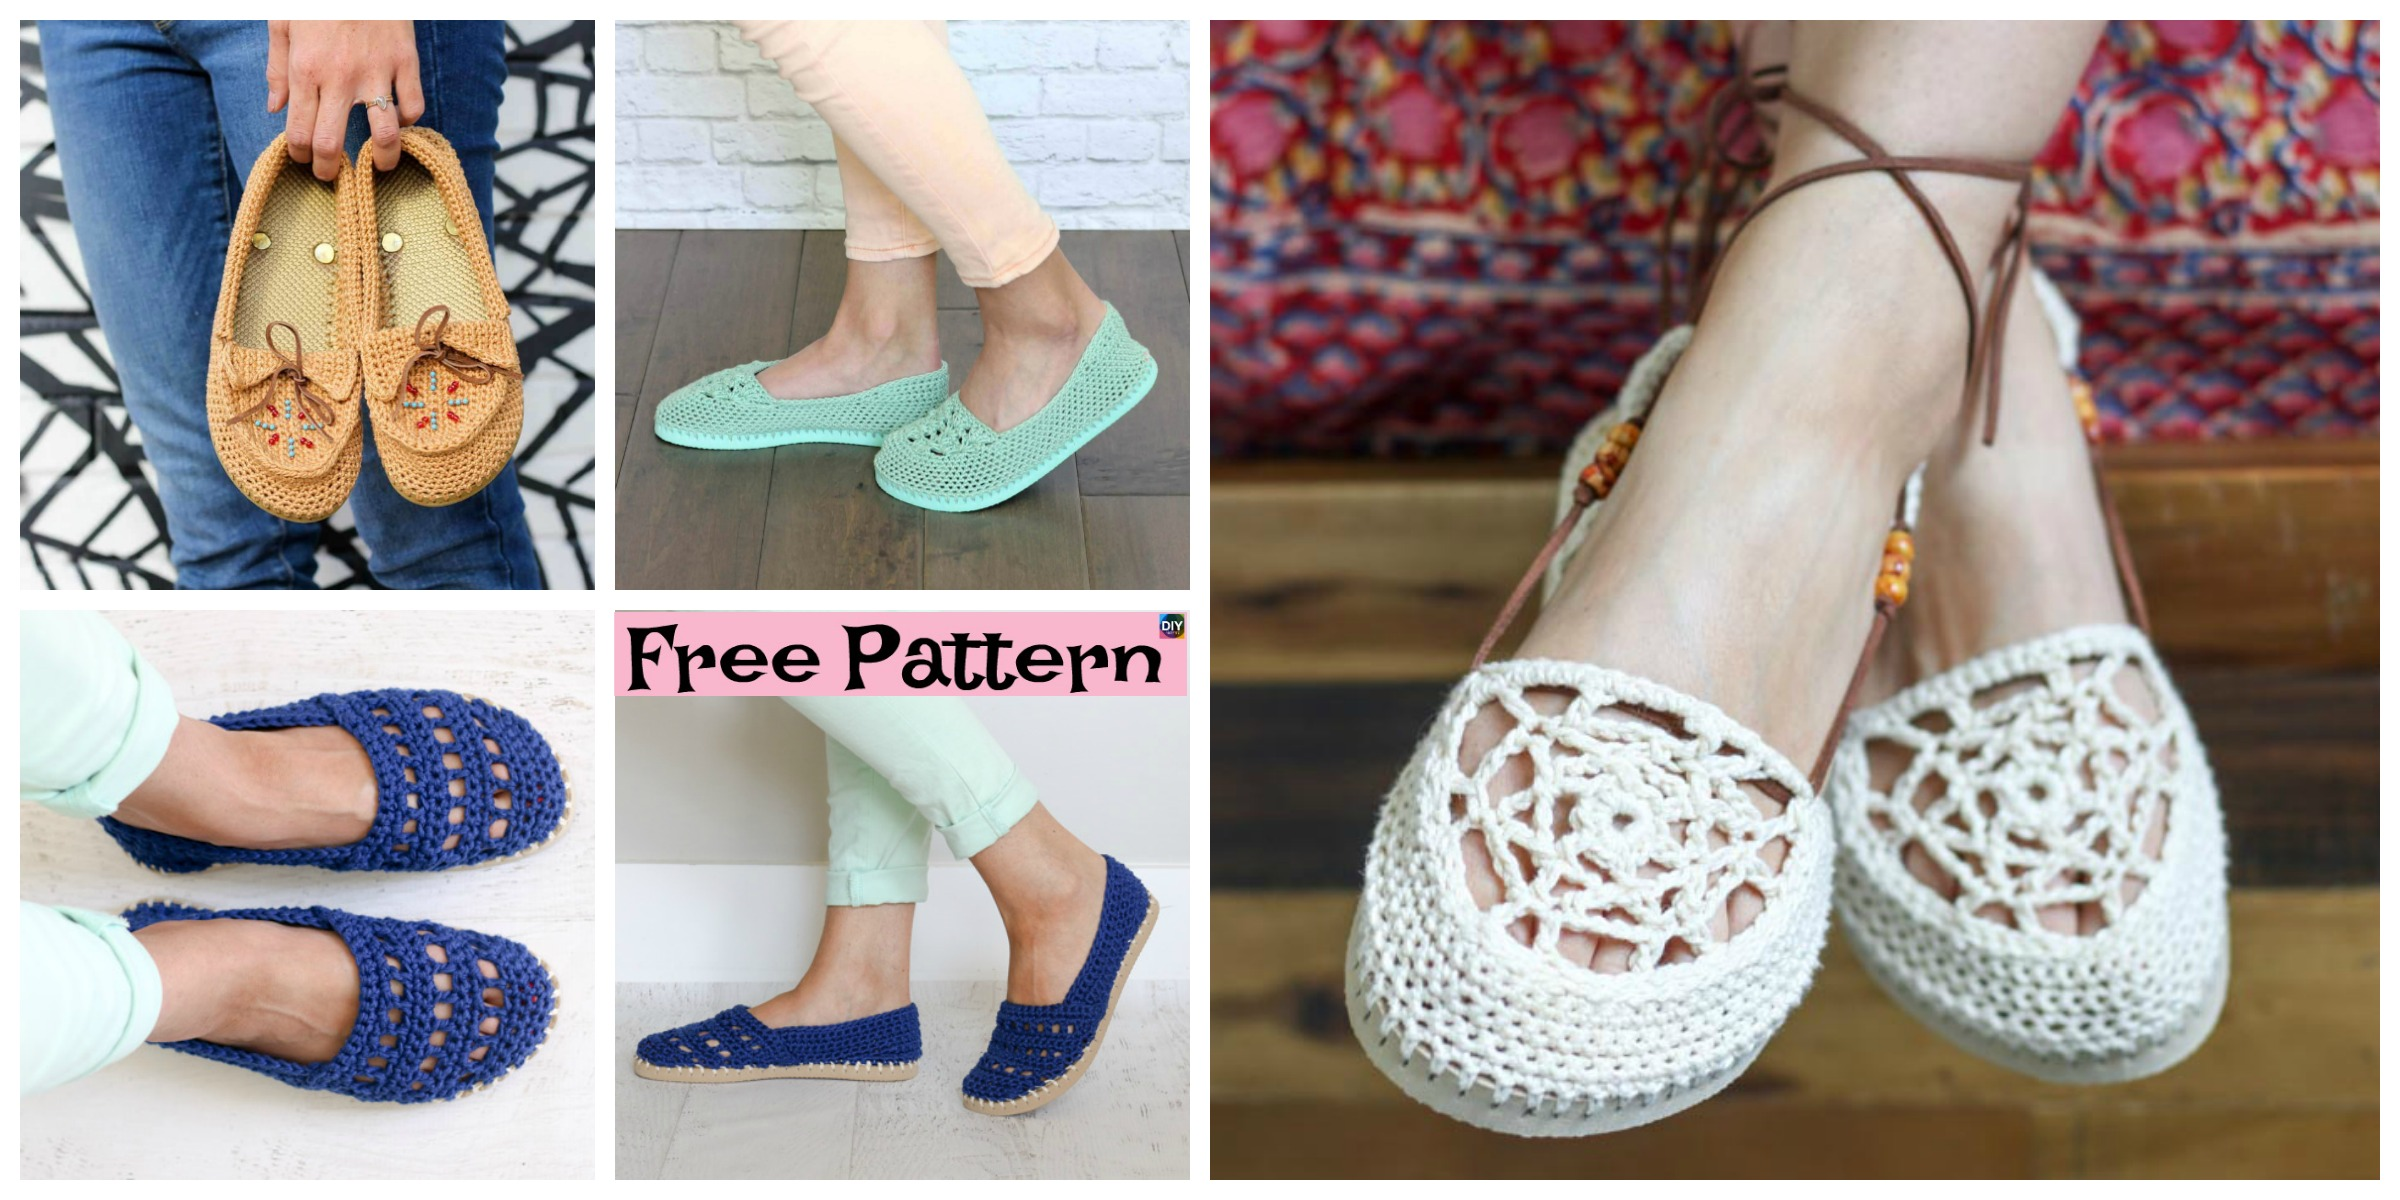 Crochet Slippers Using Flip Flop Soles – Free Patterns